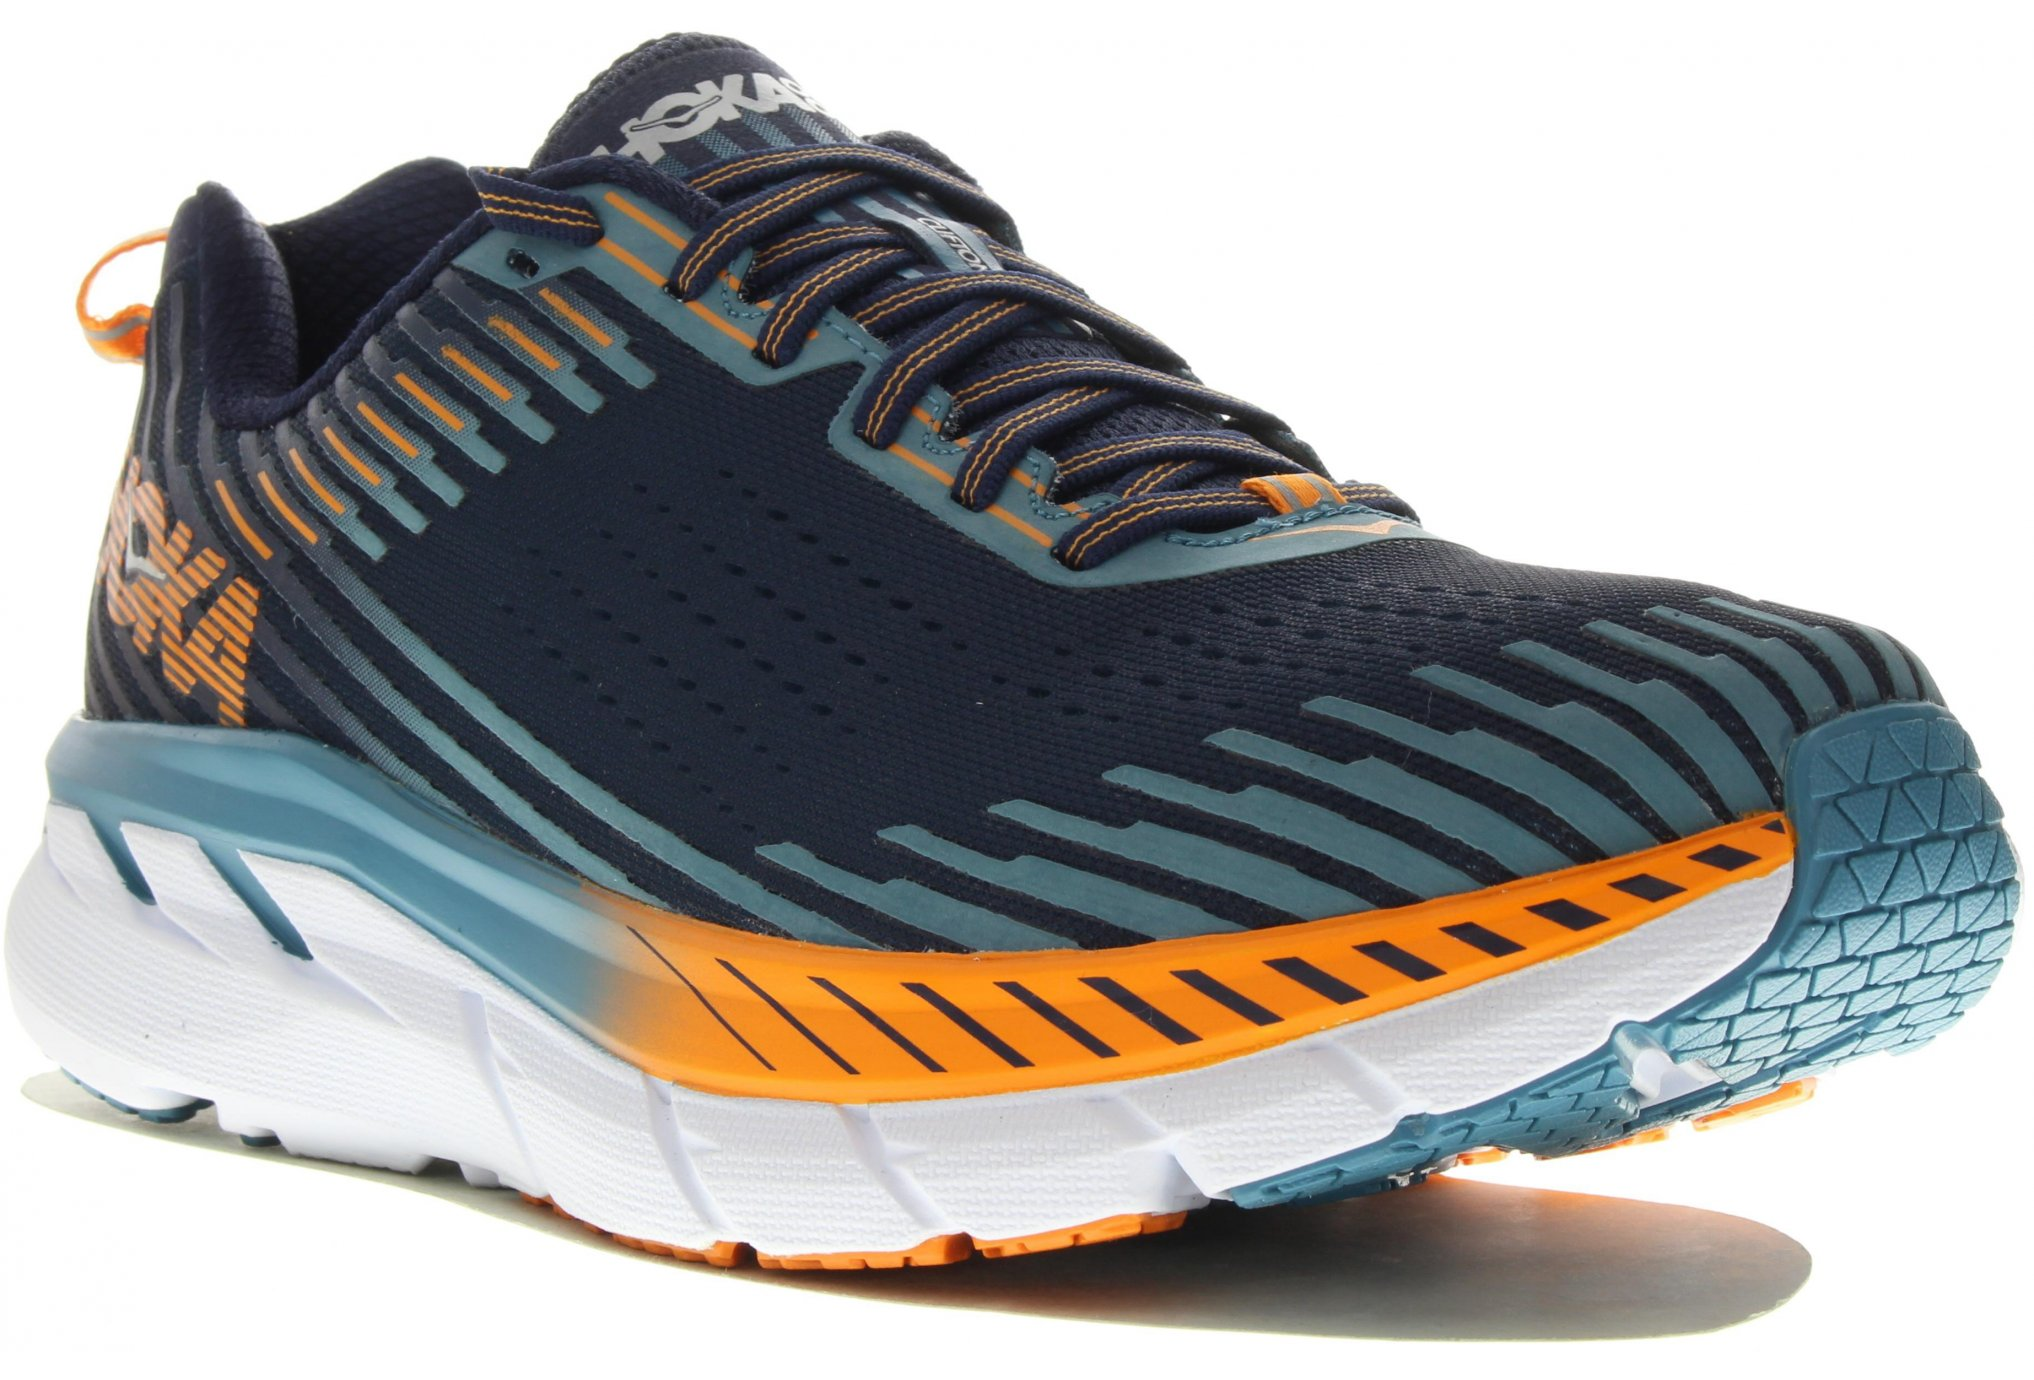 hoka-one-one-clifton-5-m-chaussures-homme-249934-1-fz